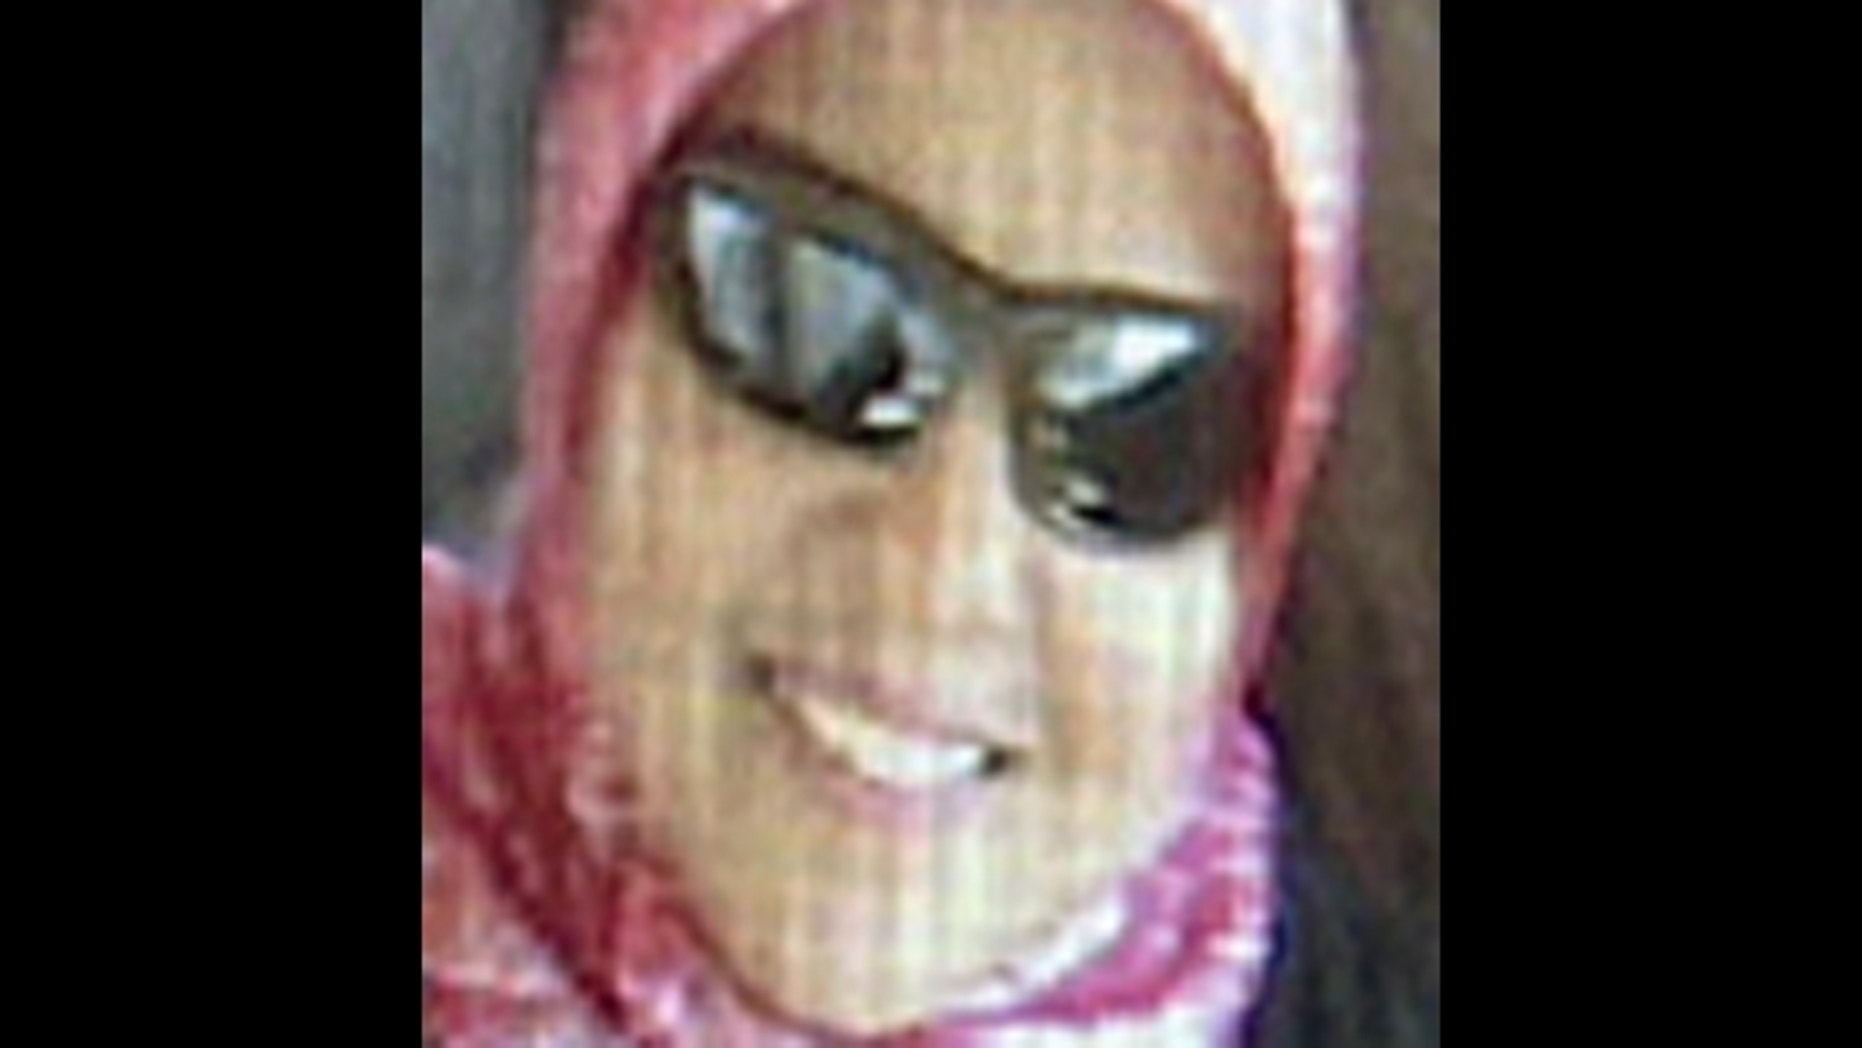 This image, provided by Fox affiliate KSWB-TV, shows 32-year-old Shaima Alawadi, who was found brutally beaten inside her El Cajon, Calif., home on Wednesday.